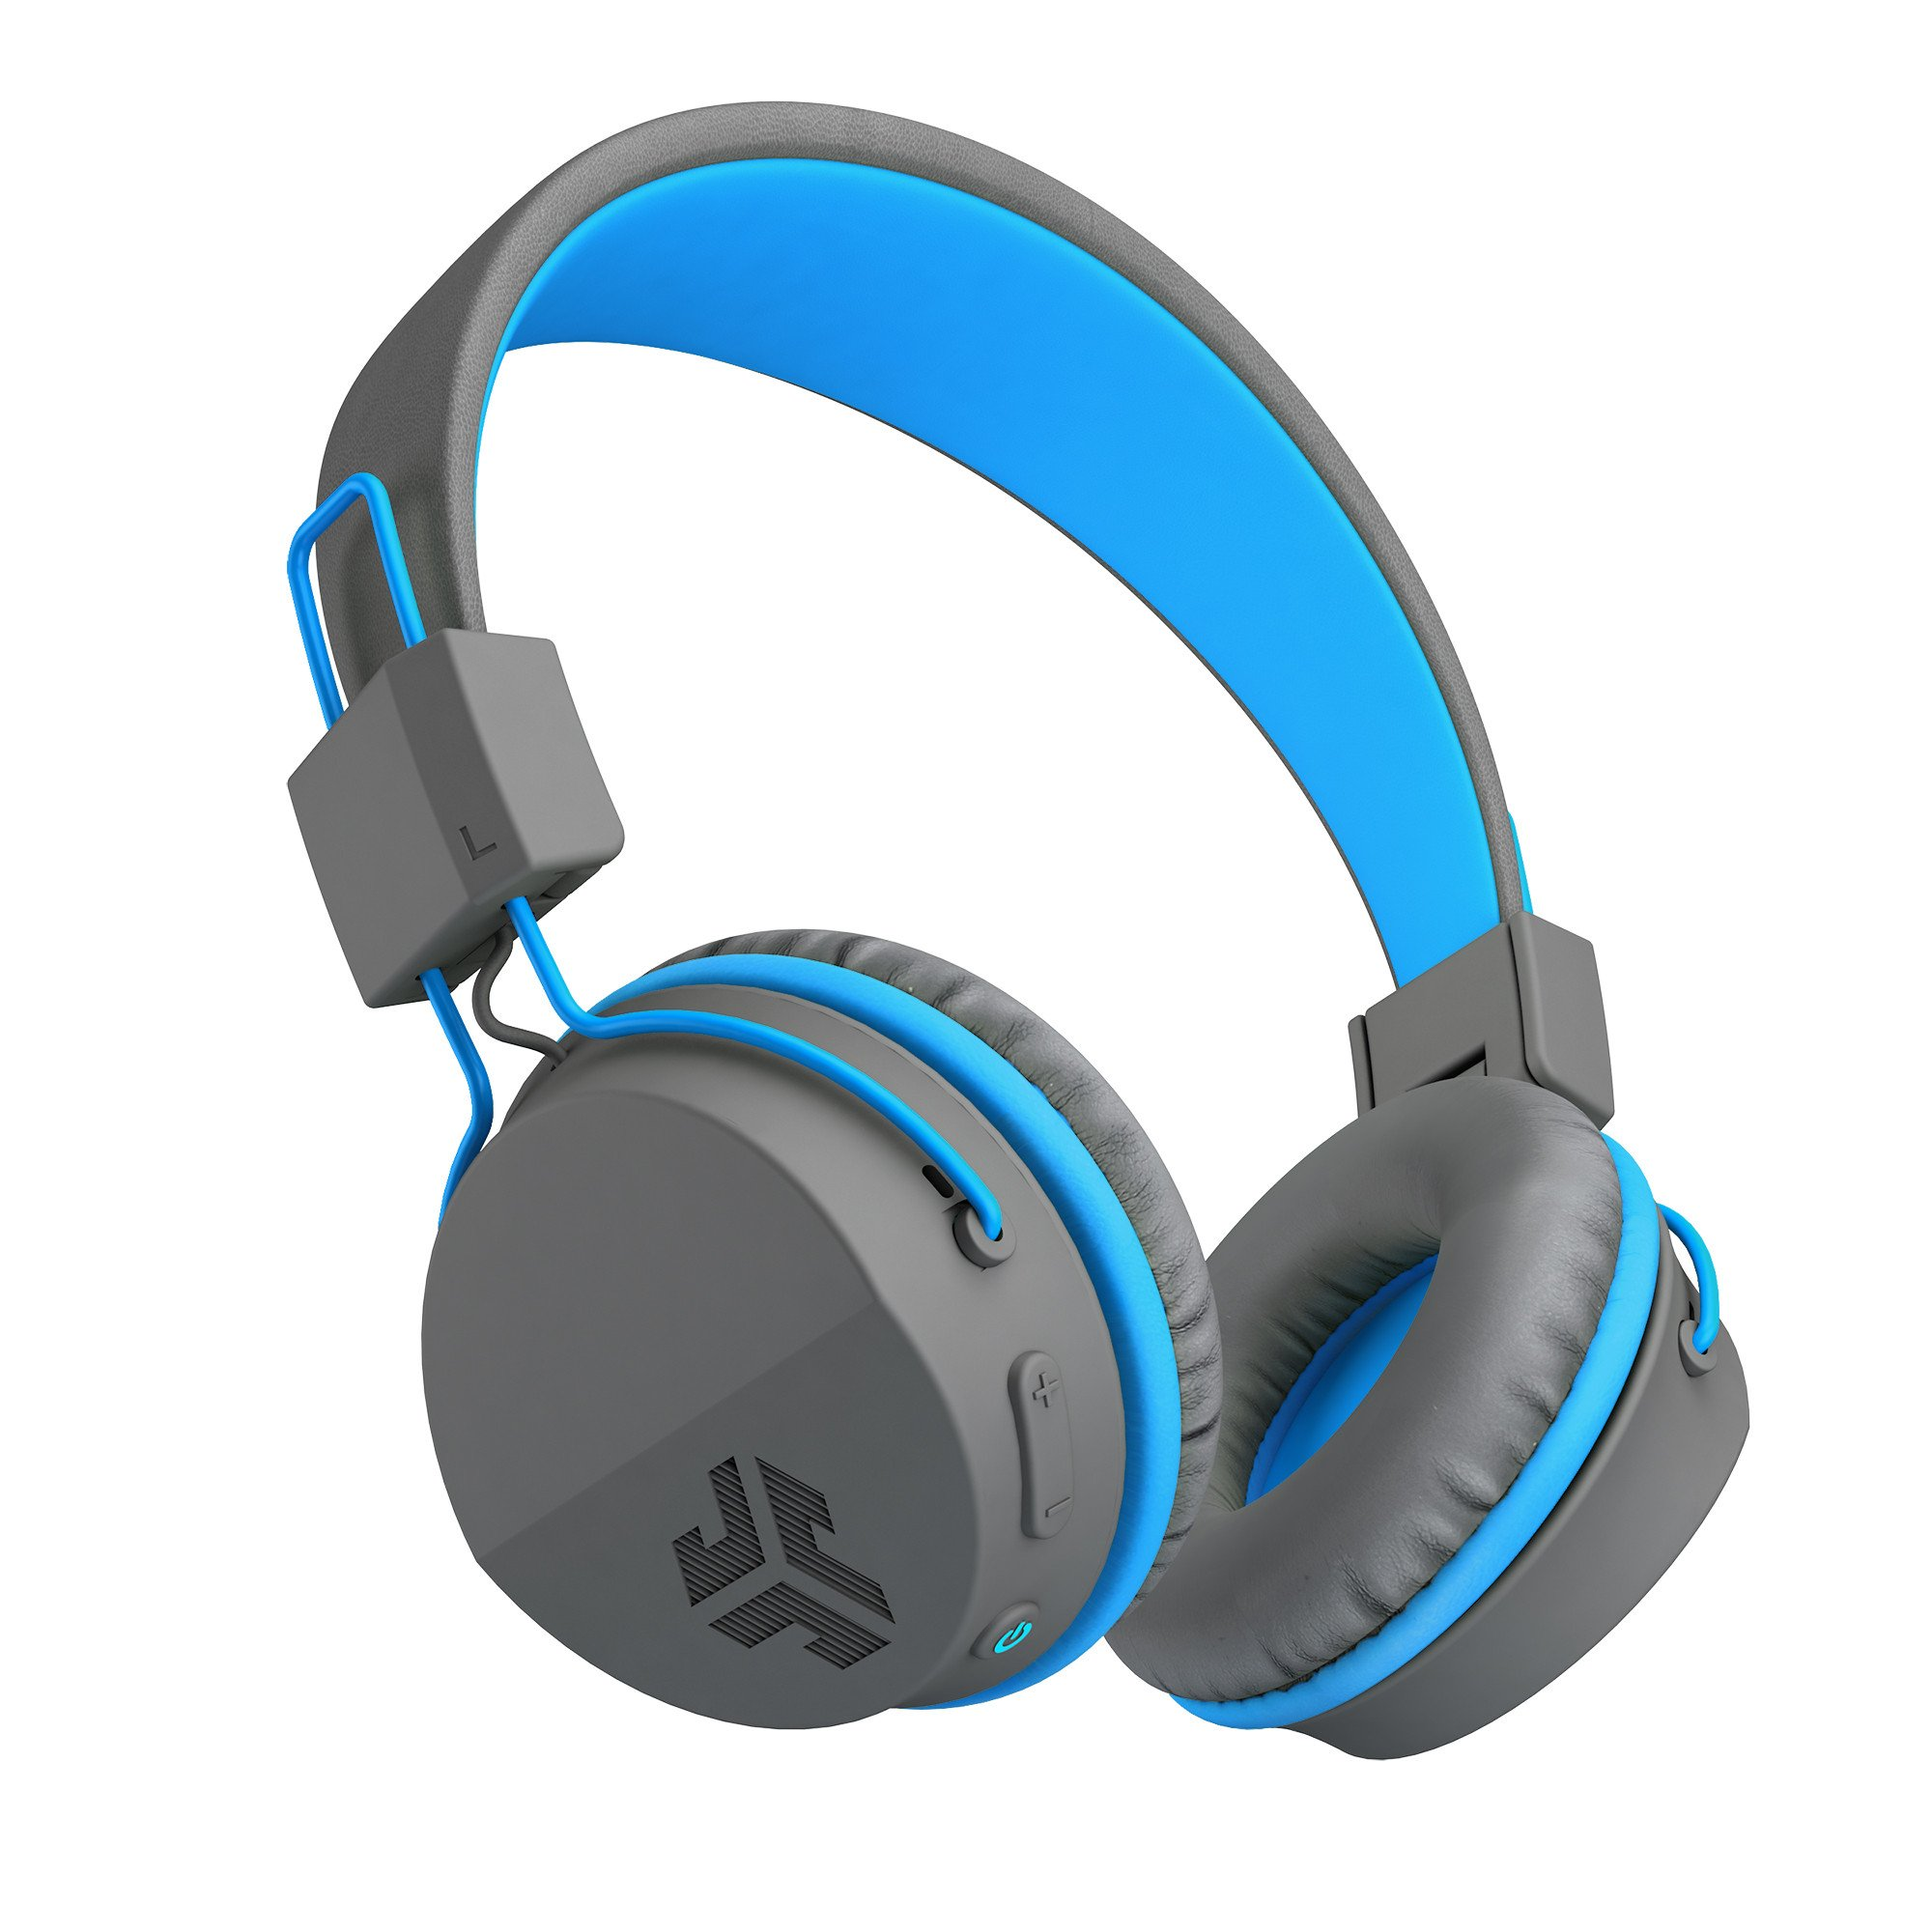 JLab Audio Neon Bluetooth On Ear Headphones, folding with Universal Mic - Gray/Blue